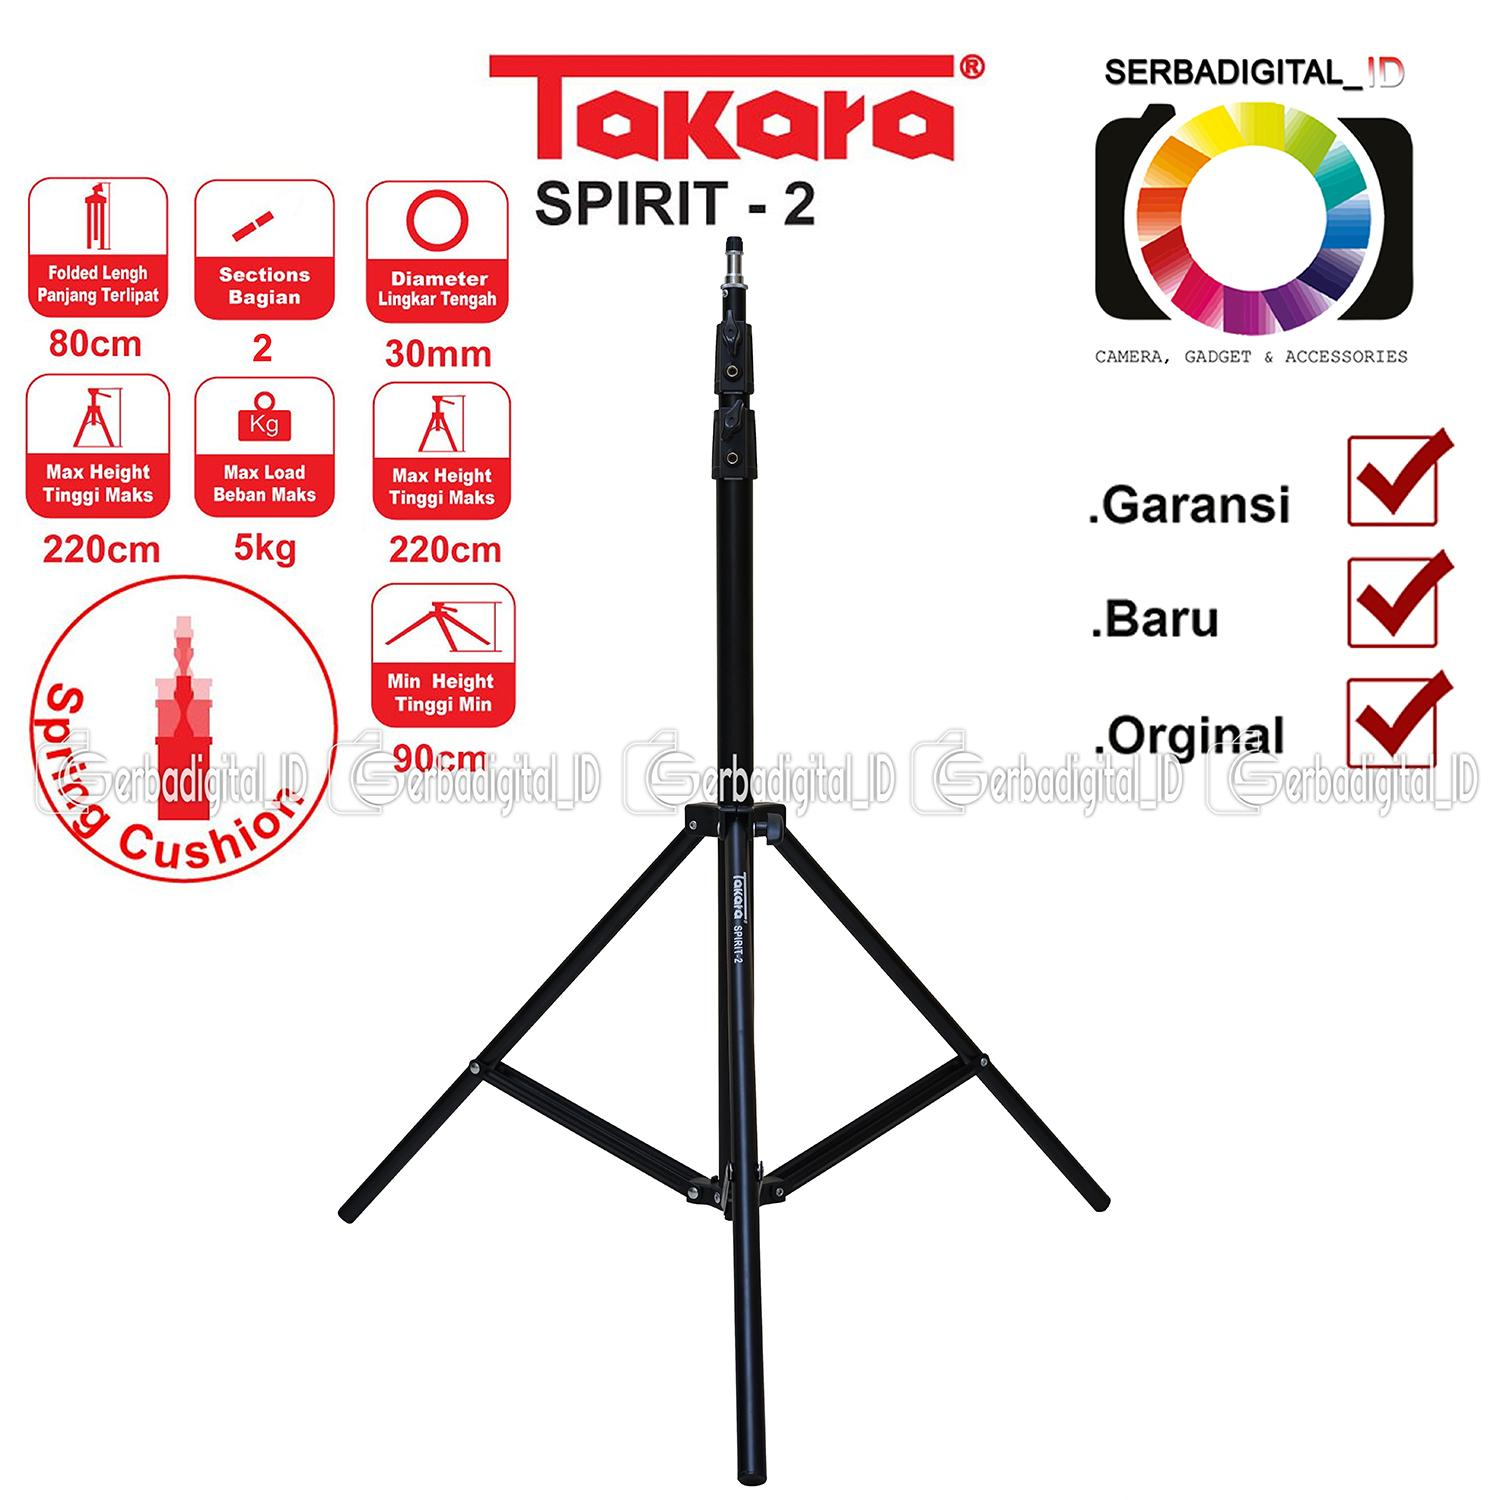 Tripod Takara Klik Harga Eco 233a Lightweight Spirit 2 Light Stand Studio Tipe Spring Cushion Per